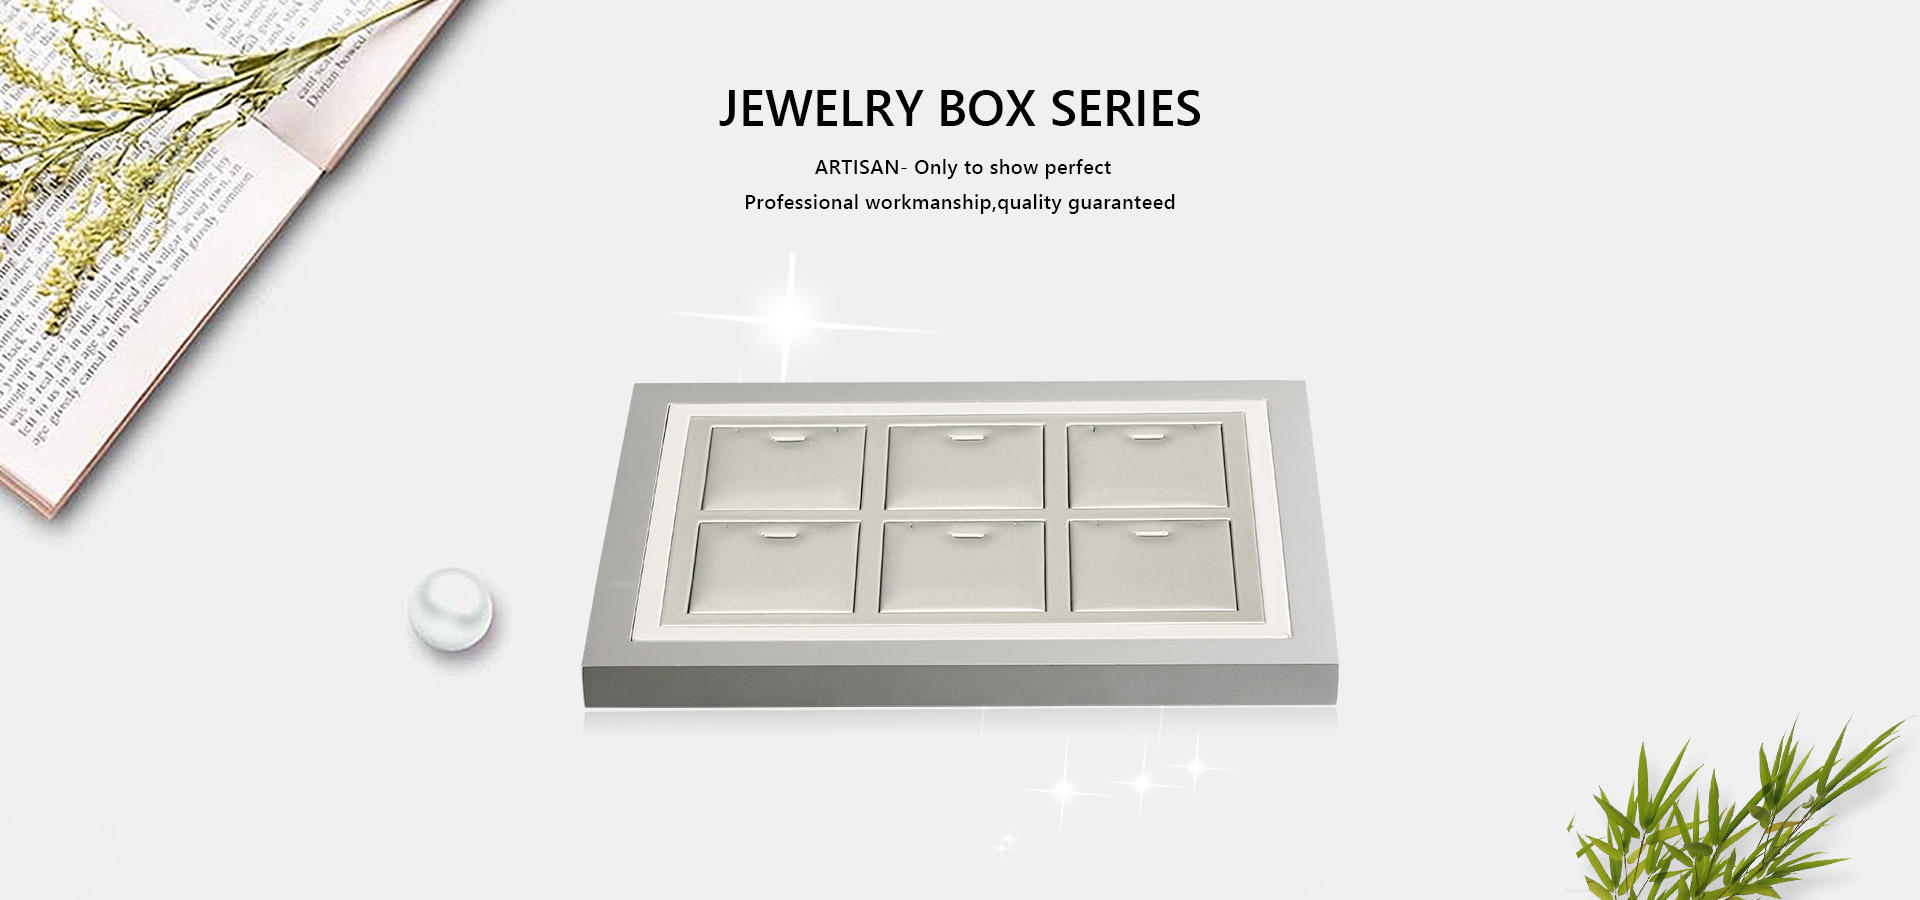 jdsp jewellery organiser stackable tray with imported velvet for sale Artisan